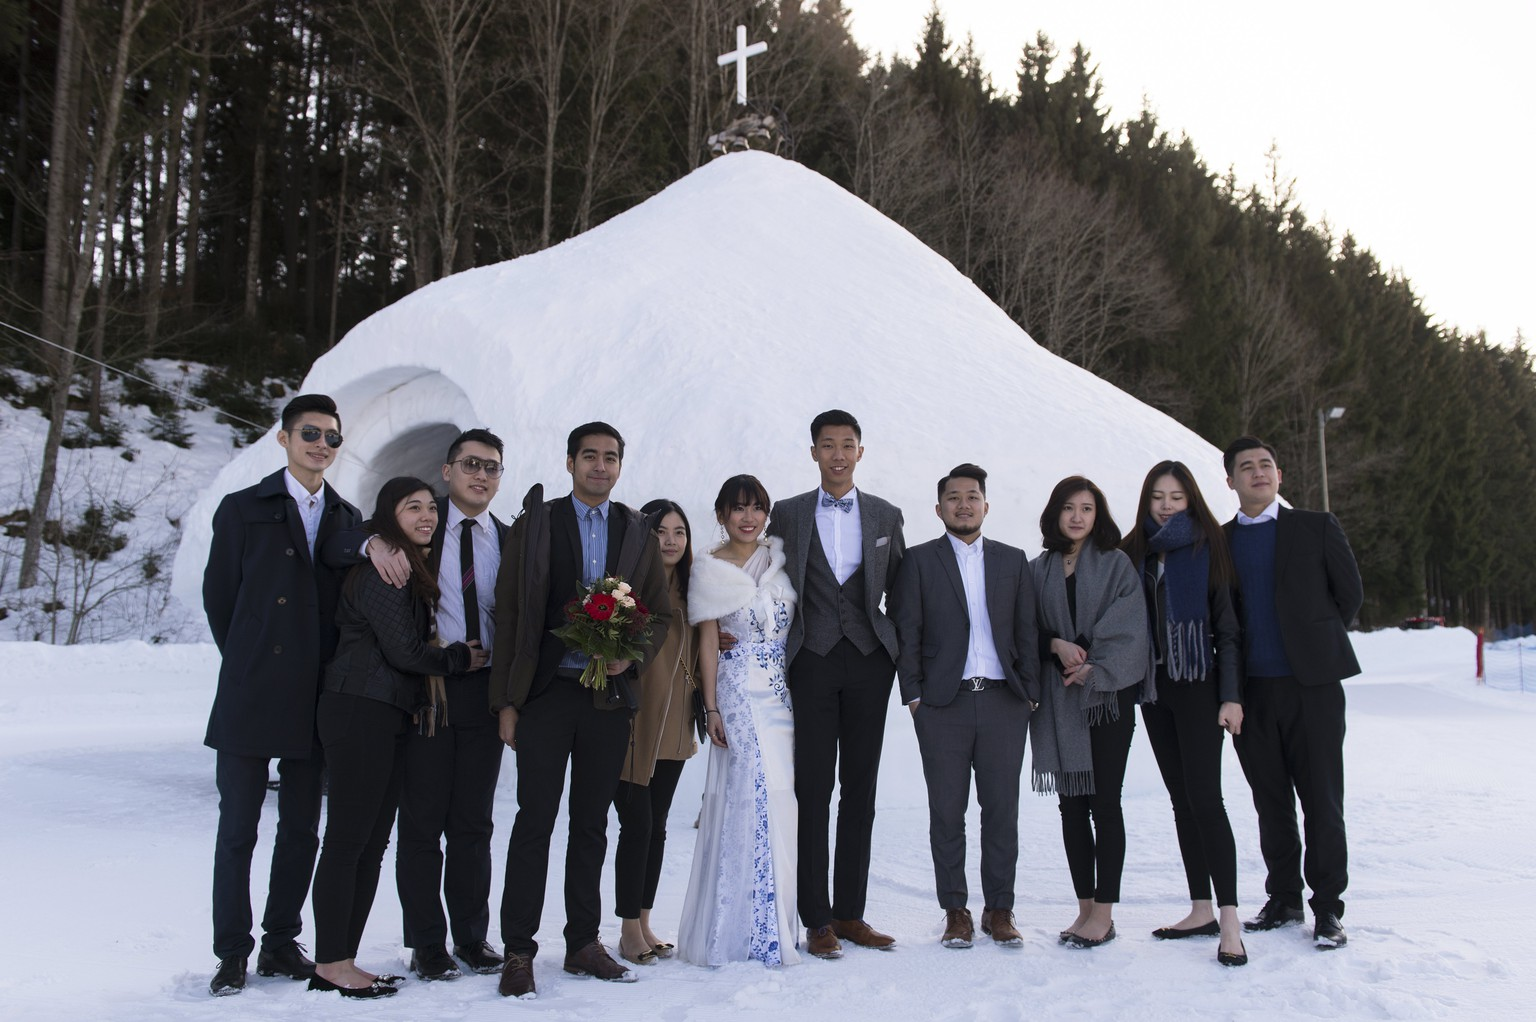 epa05793120 Newlyweds Chinese young people and their guests pose for a picture on the Valentine's Day, in the Swiss Alps Resort of Leysin, Switzerland, 14 February 2017. An ice church is a new attraction of the Swiss ski resort of Leysin, developed to attract Asian tourists, who want to get married in an ice church.  EPA/THOMAS DELLEY